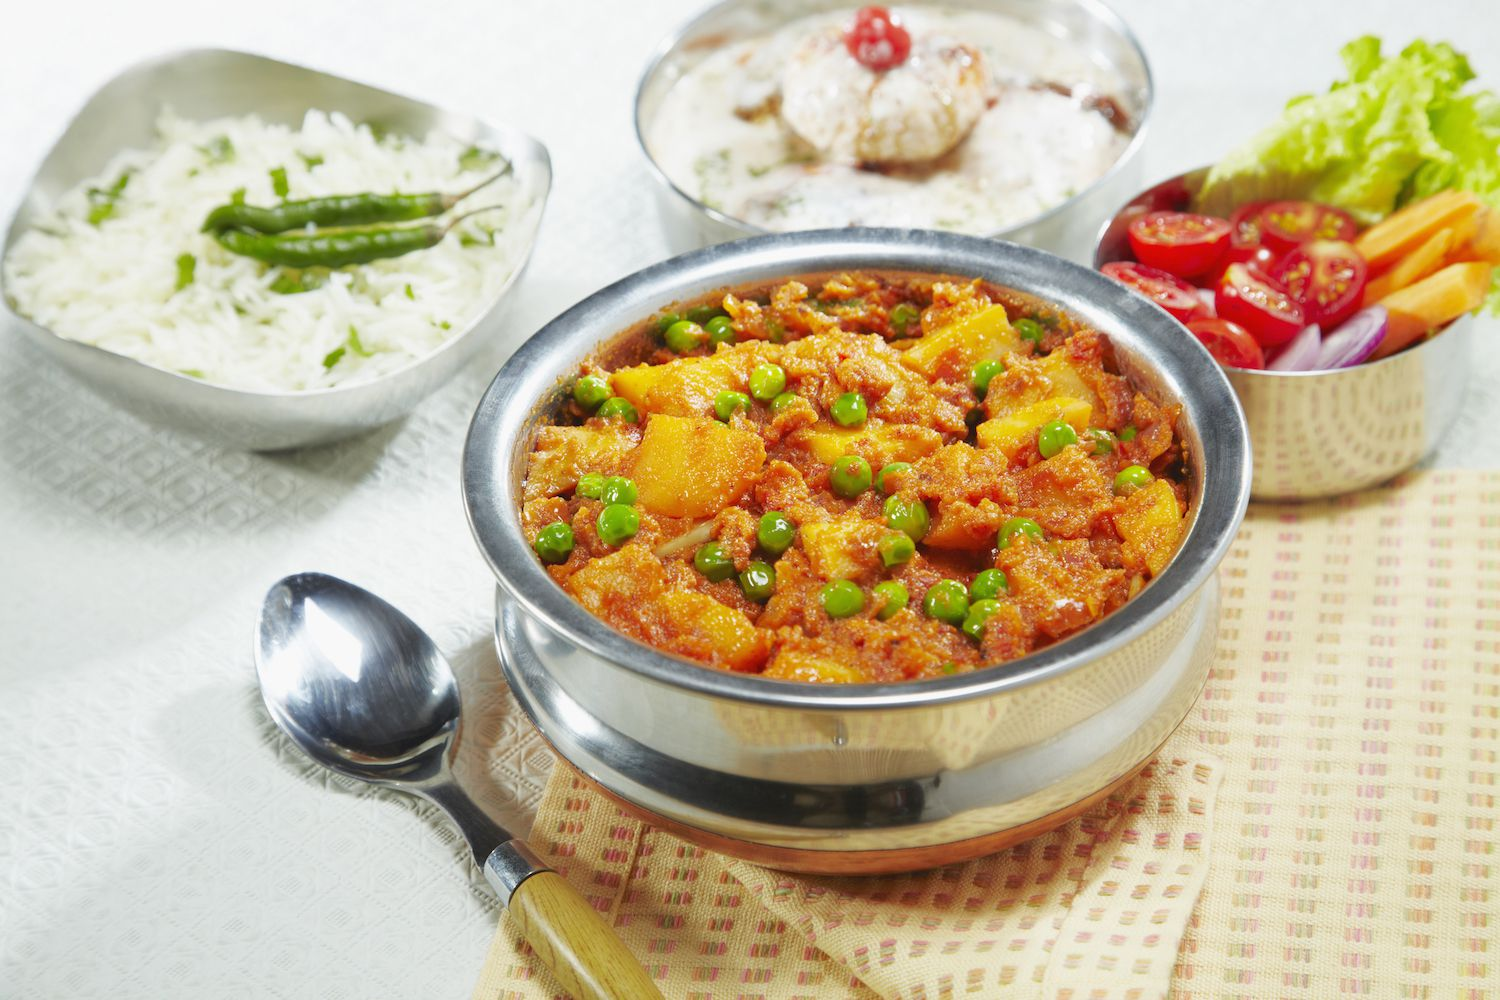 Aloo matar indian potatoes and peas recipe forumfinder Image collections